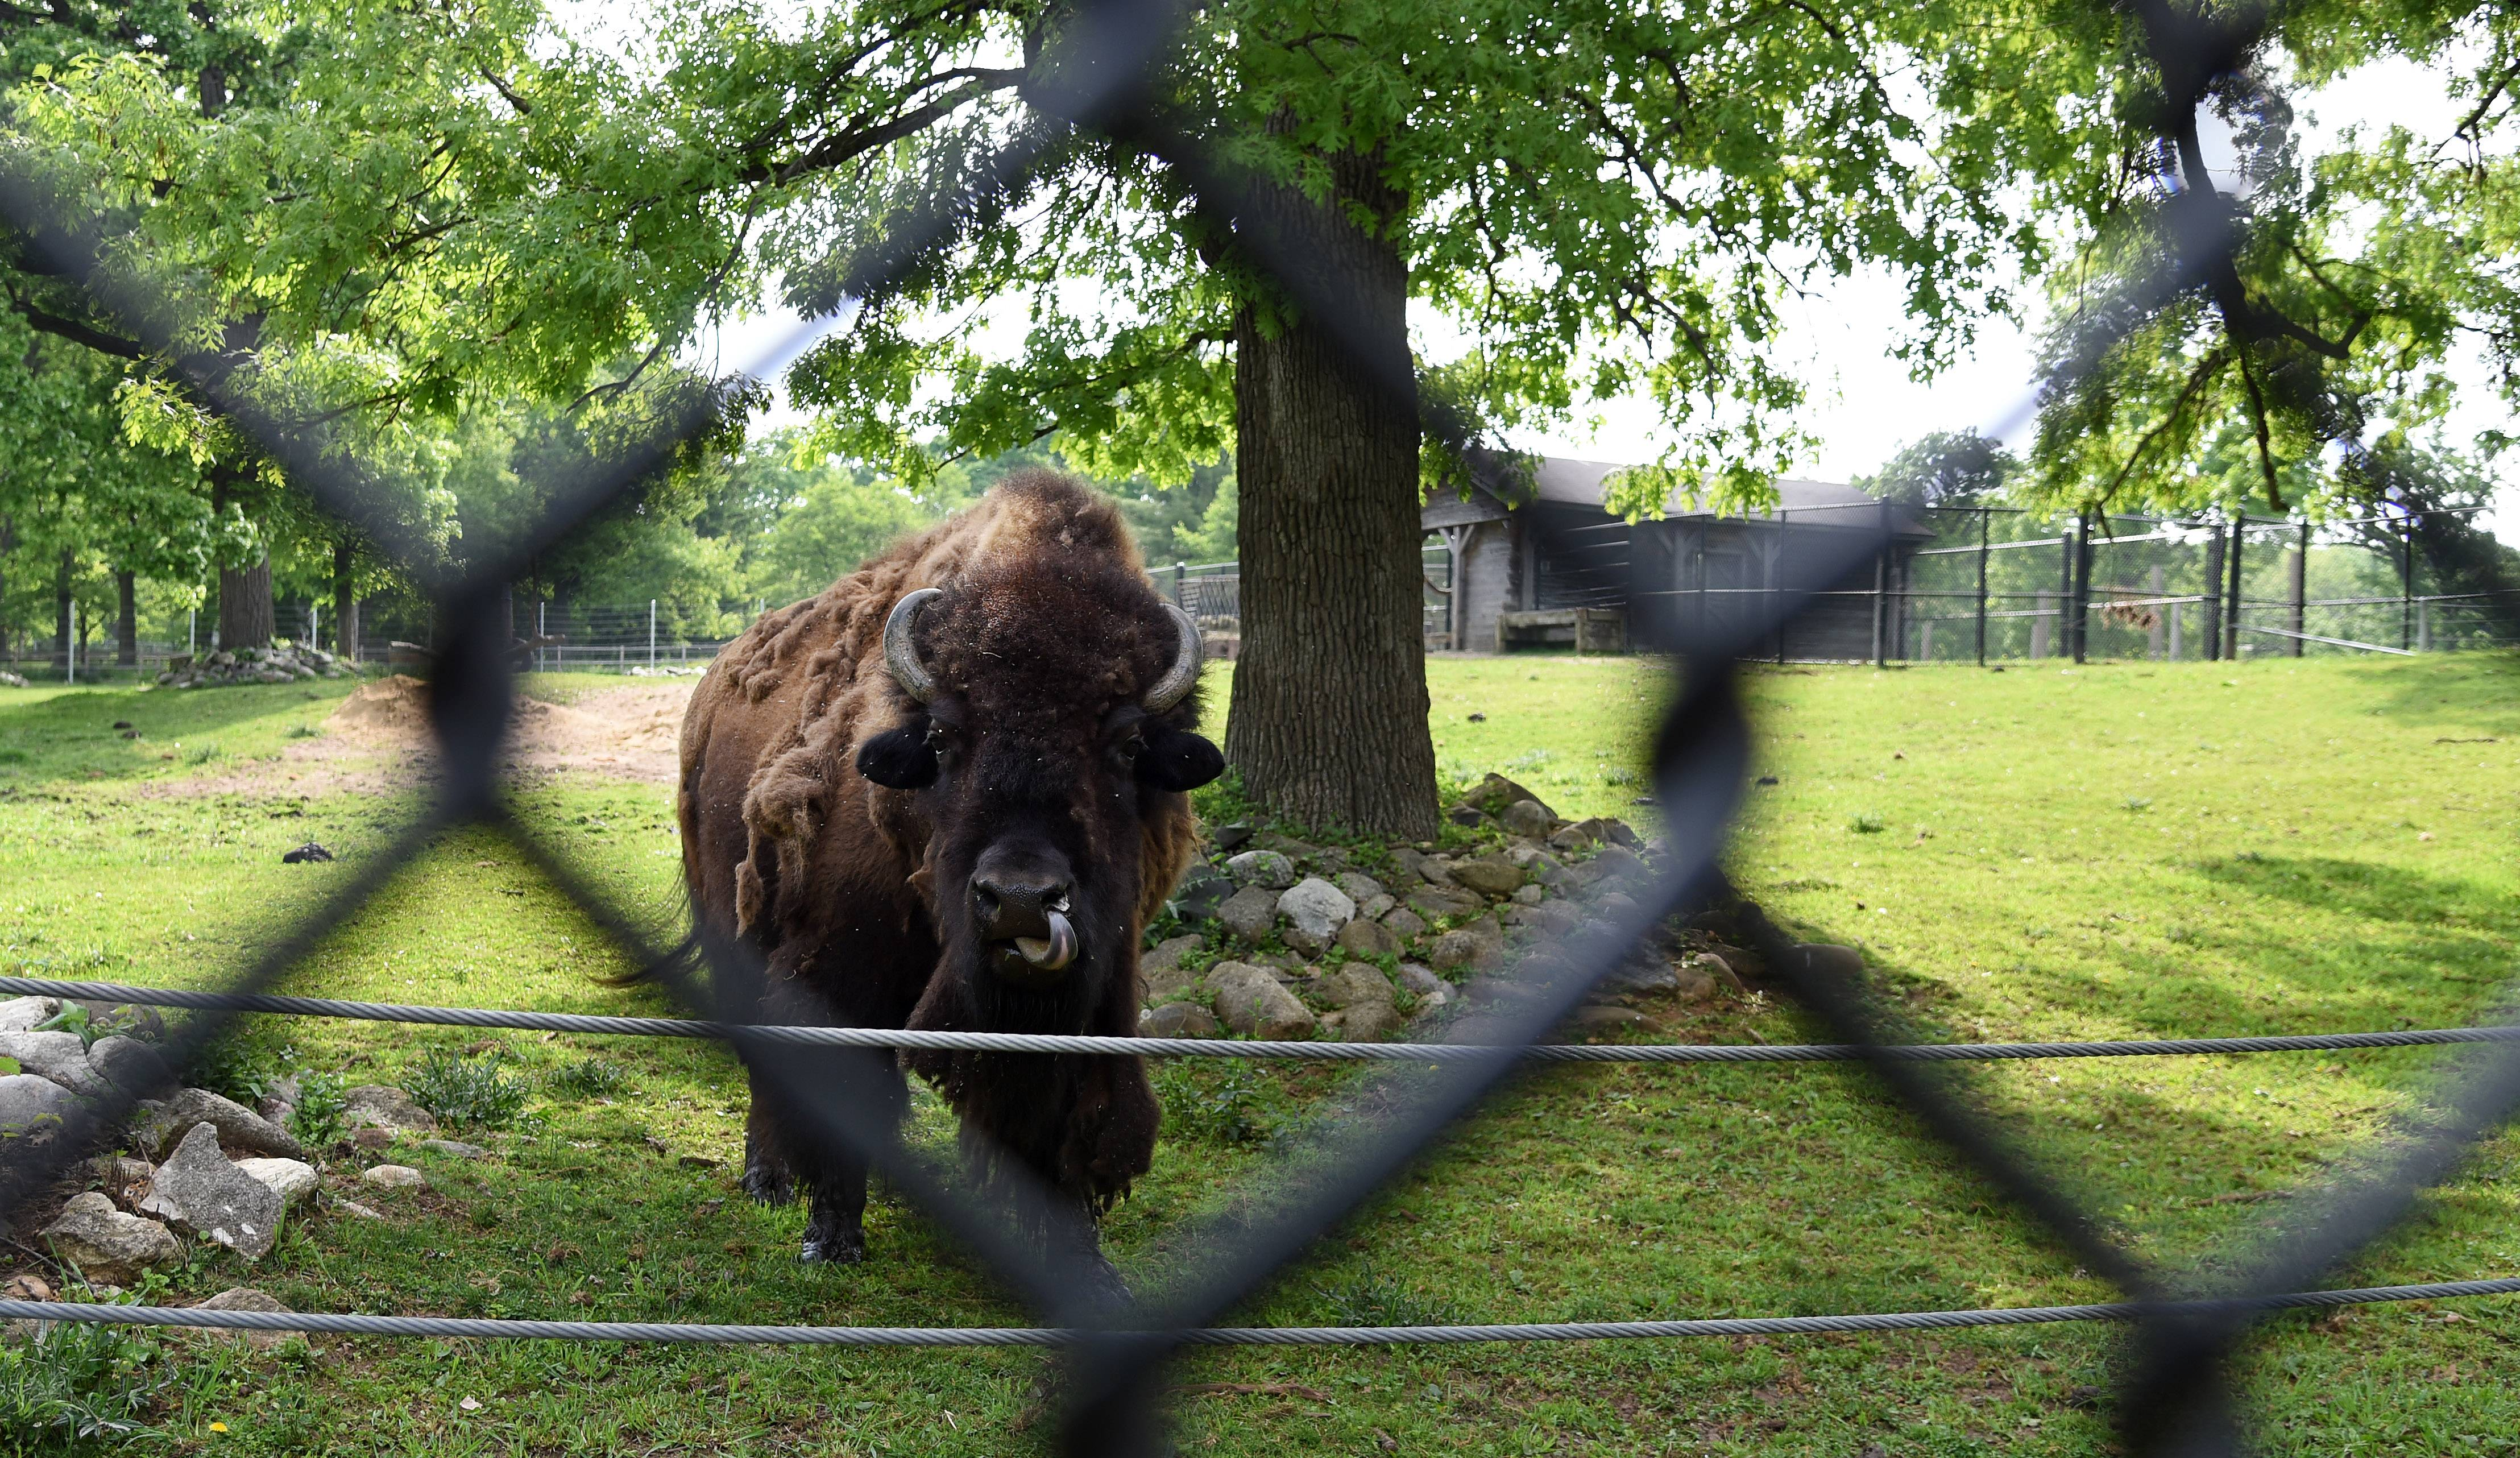 Lords Park Zoo in Elgin which has two bison, is expected to get two more bison sometime this fall.